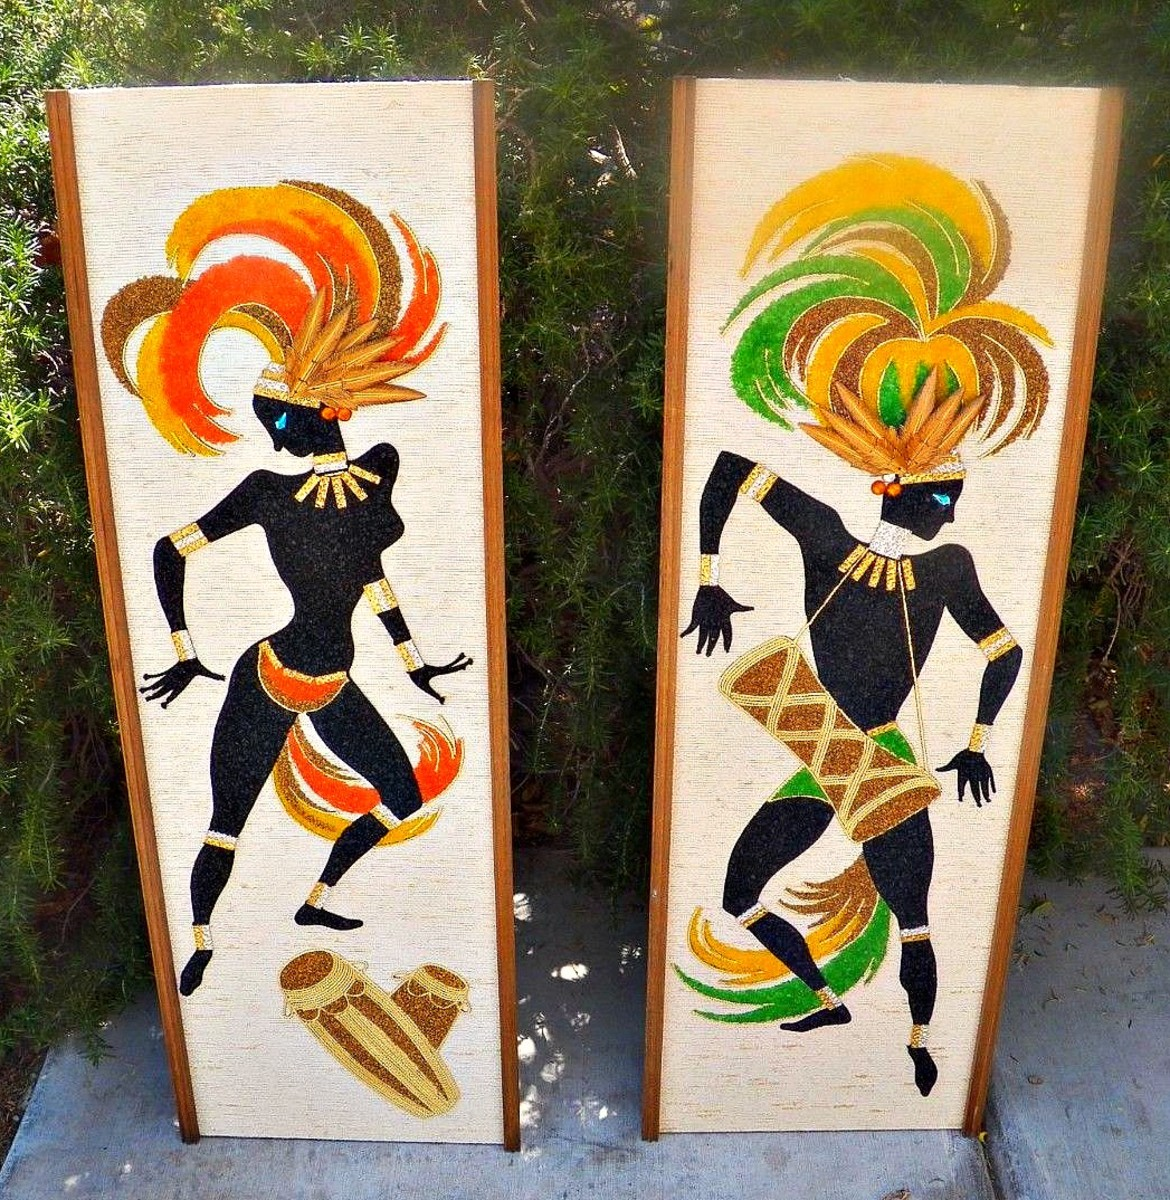 Gravel Art by Picturesque Tropical Exotic Dancers. Mid-century 13 inches by 36 inches.